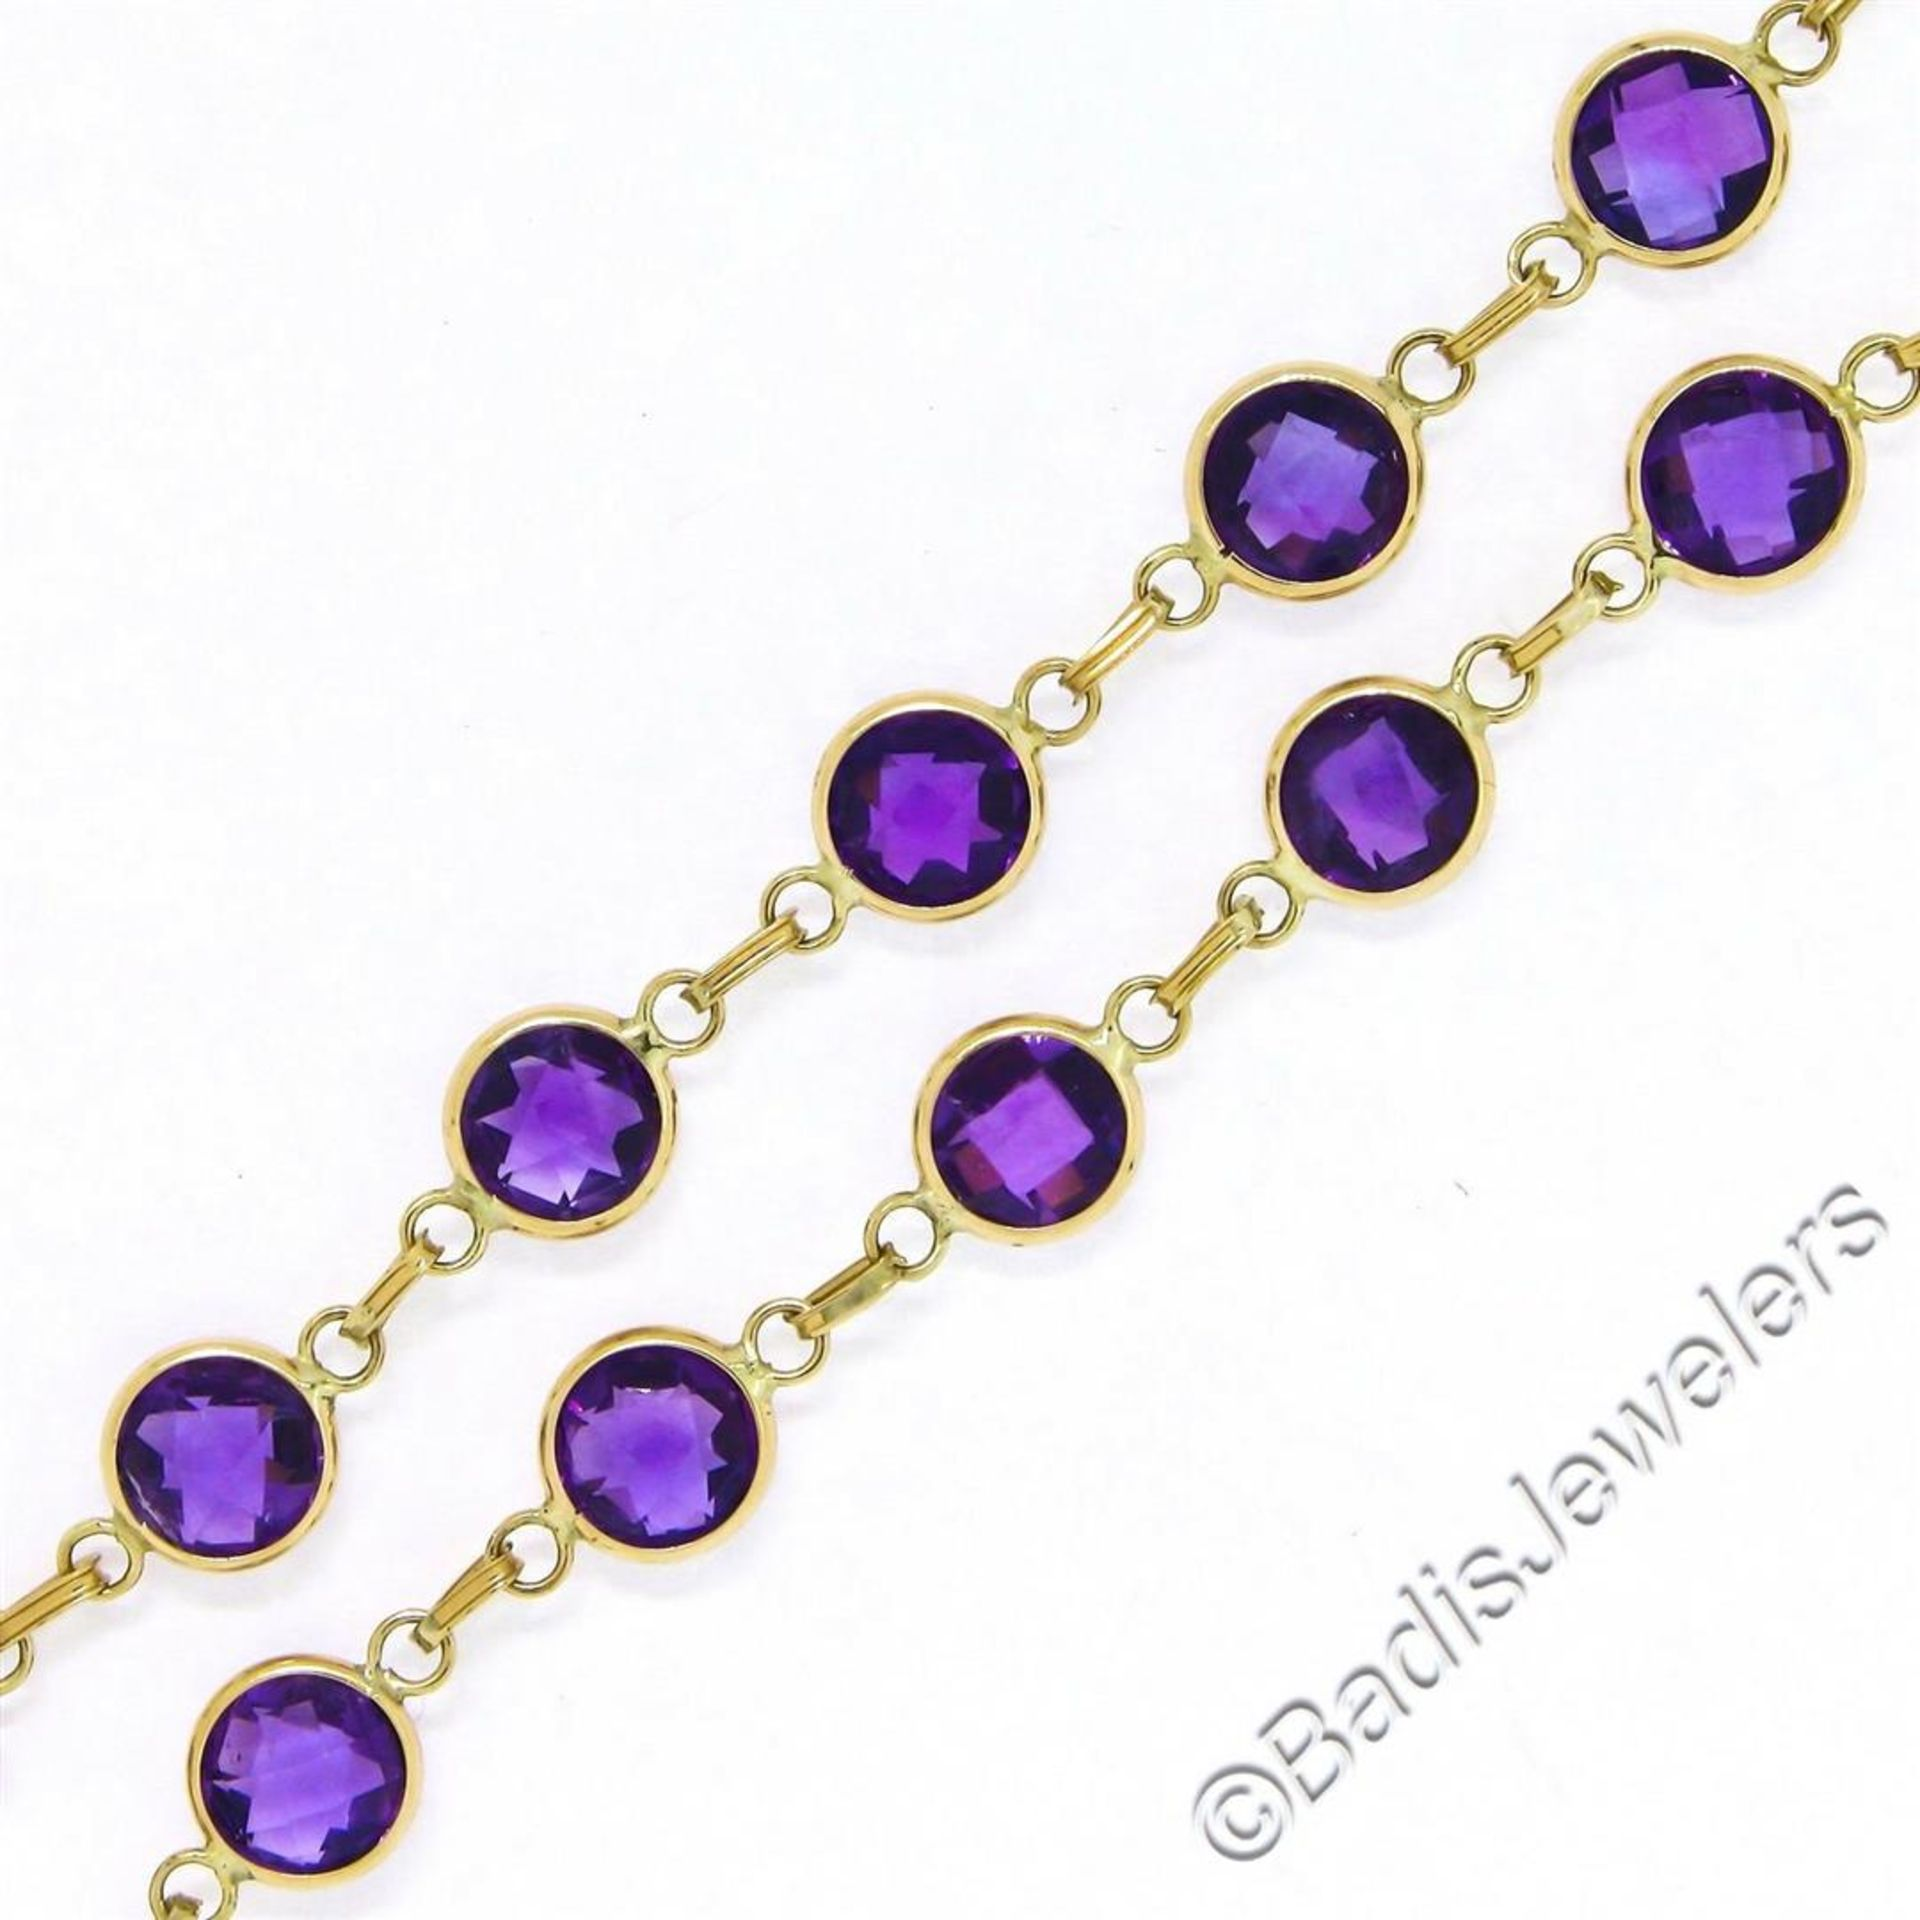 14kt Yellow Gold 10.50ctw Round Checkerboard Amethyst by the Yard Chain Bracelet